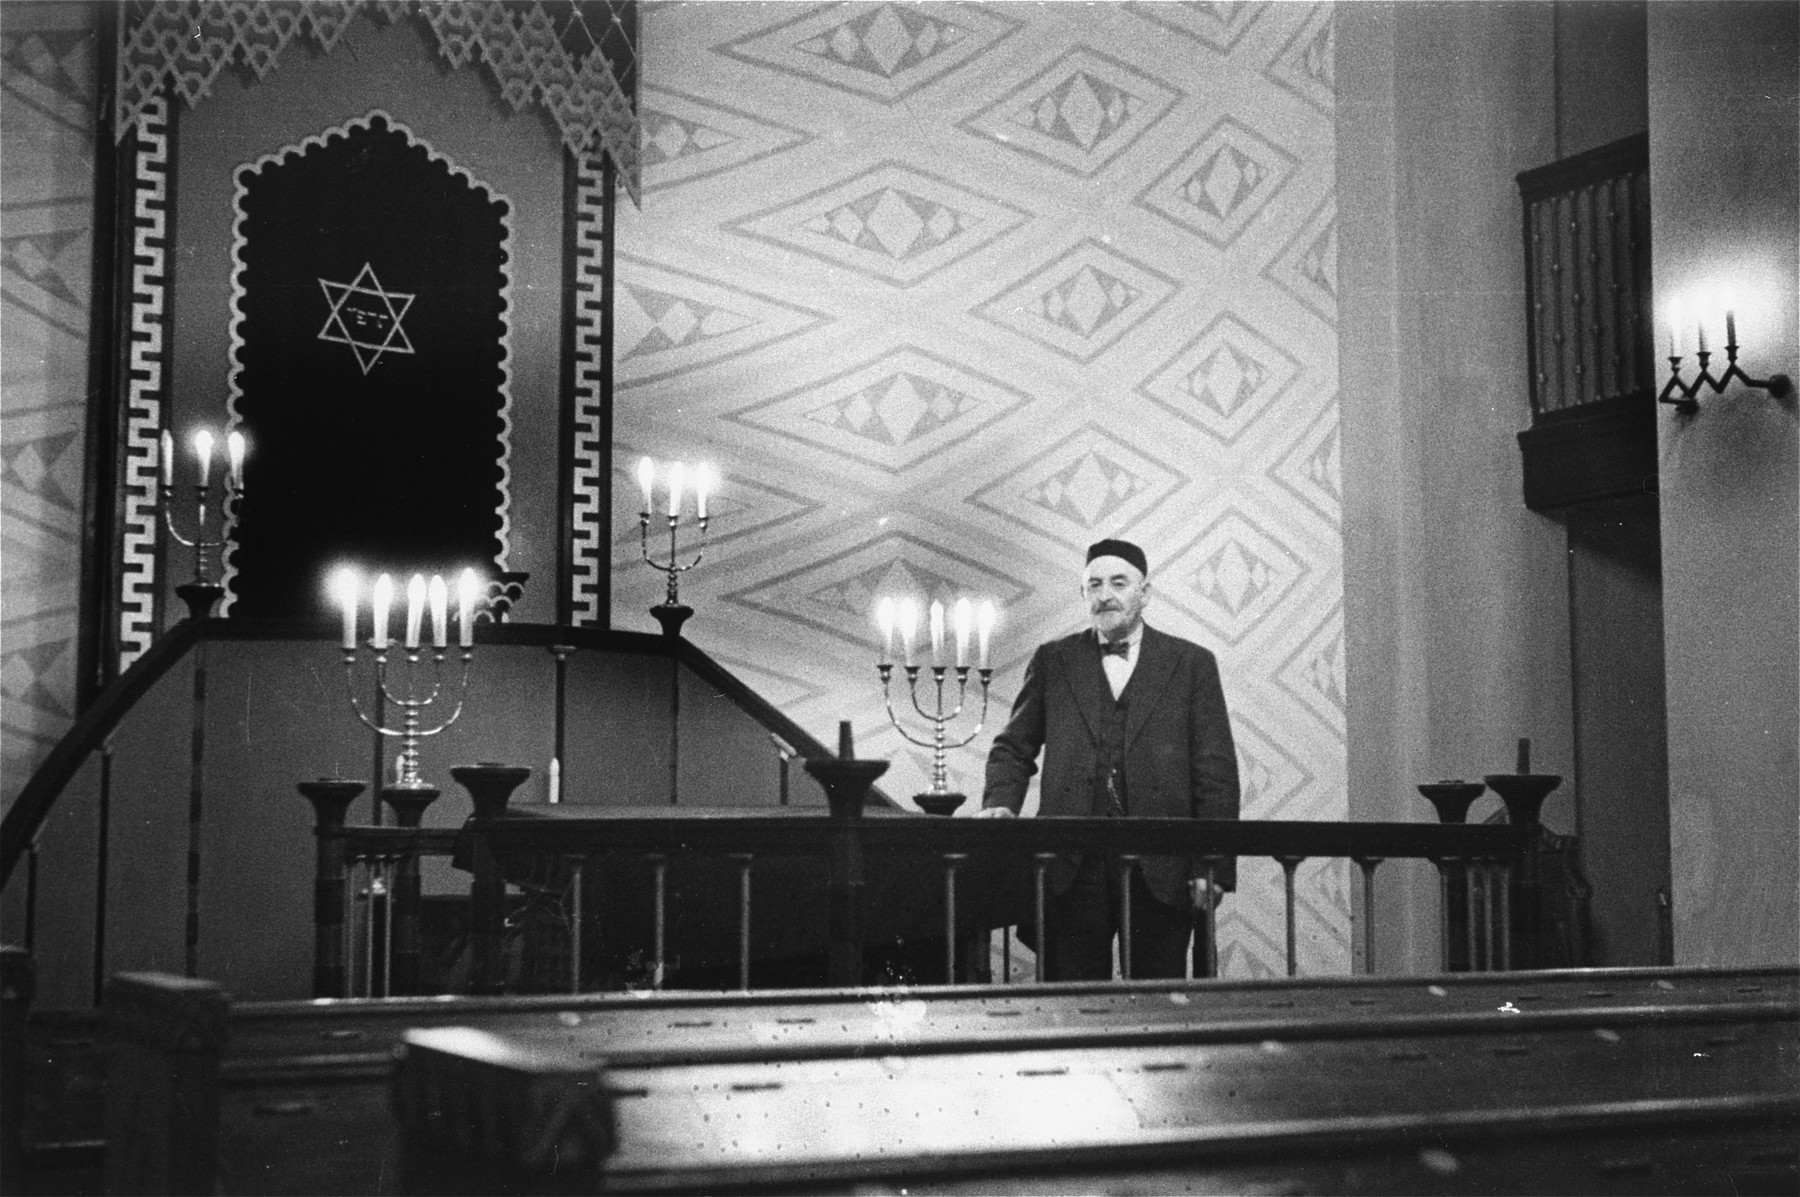 Portrait of Aron Mendelsohn, the donor's father, in the sanctuary of the synagogue in Trondheim, Norway.  Aron Mendelsohn was a clothing manufacturer in Trondheim, Norway, who was a prominent member of the local Jewish community.  He was later sent to the Falstad concentration camp.